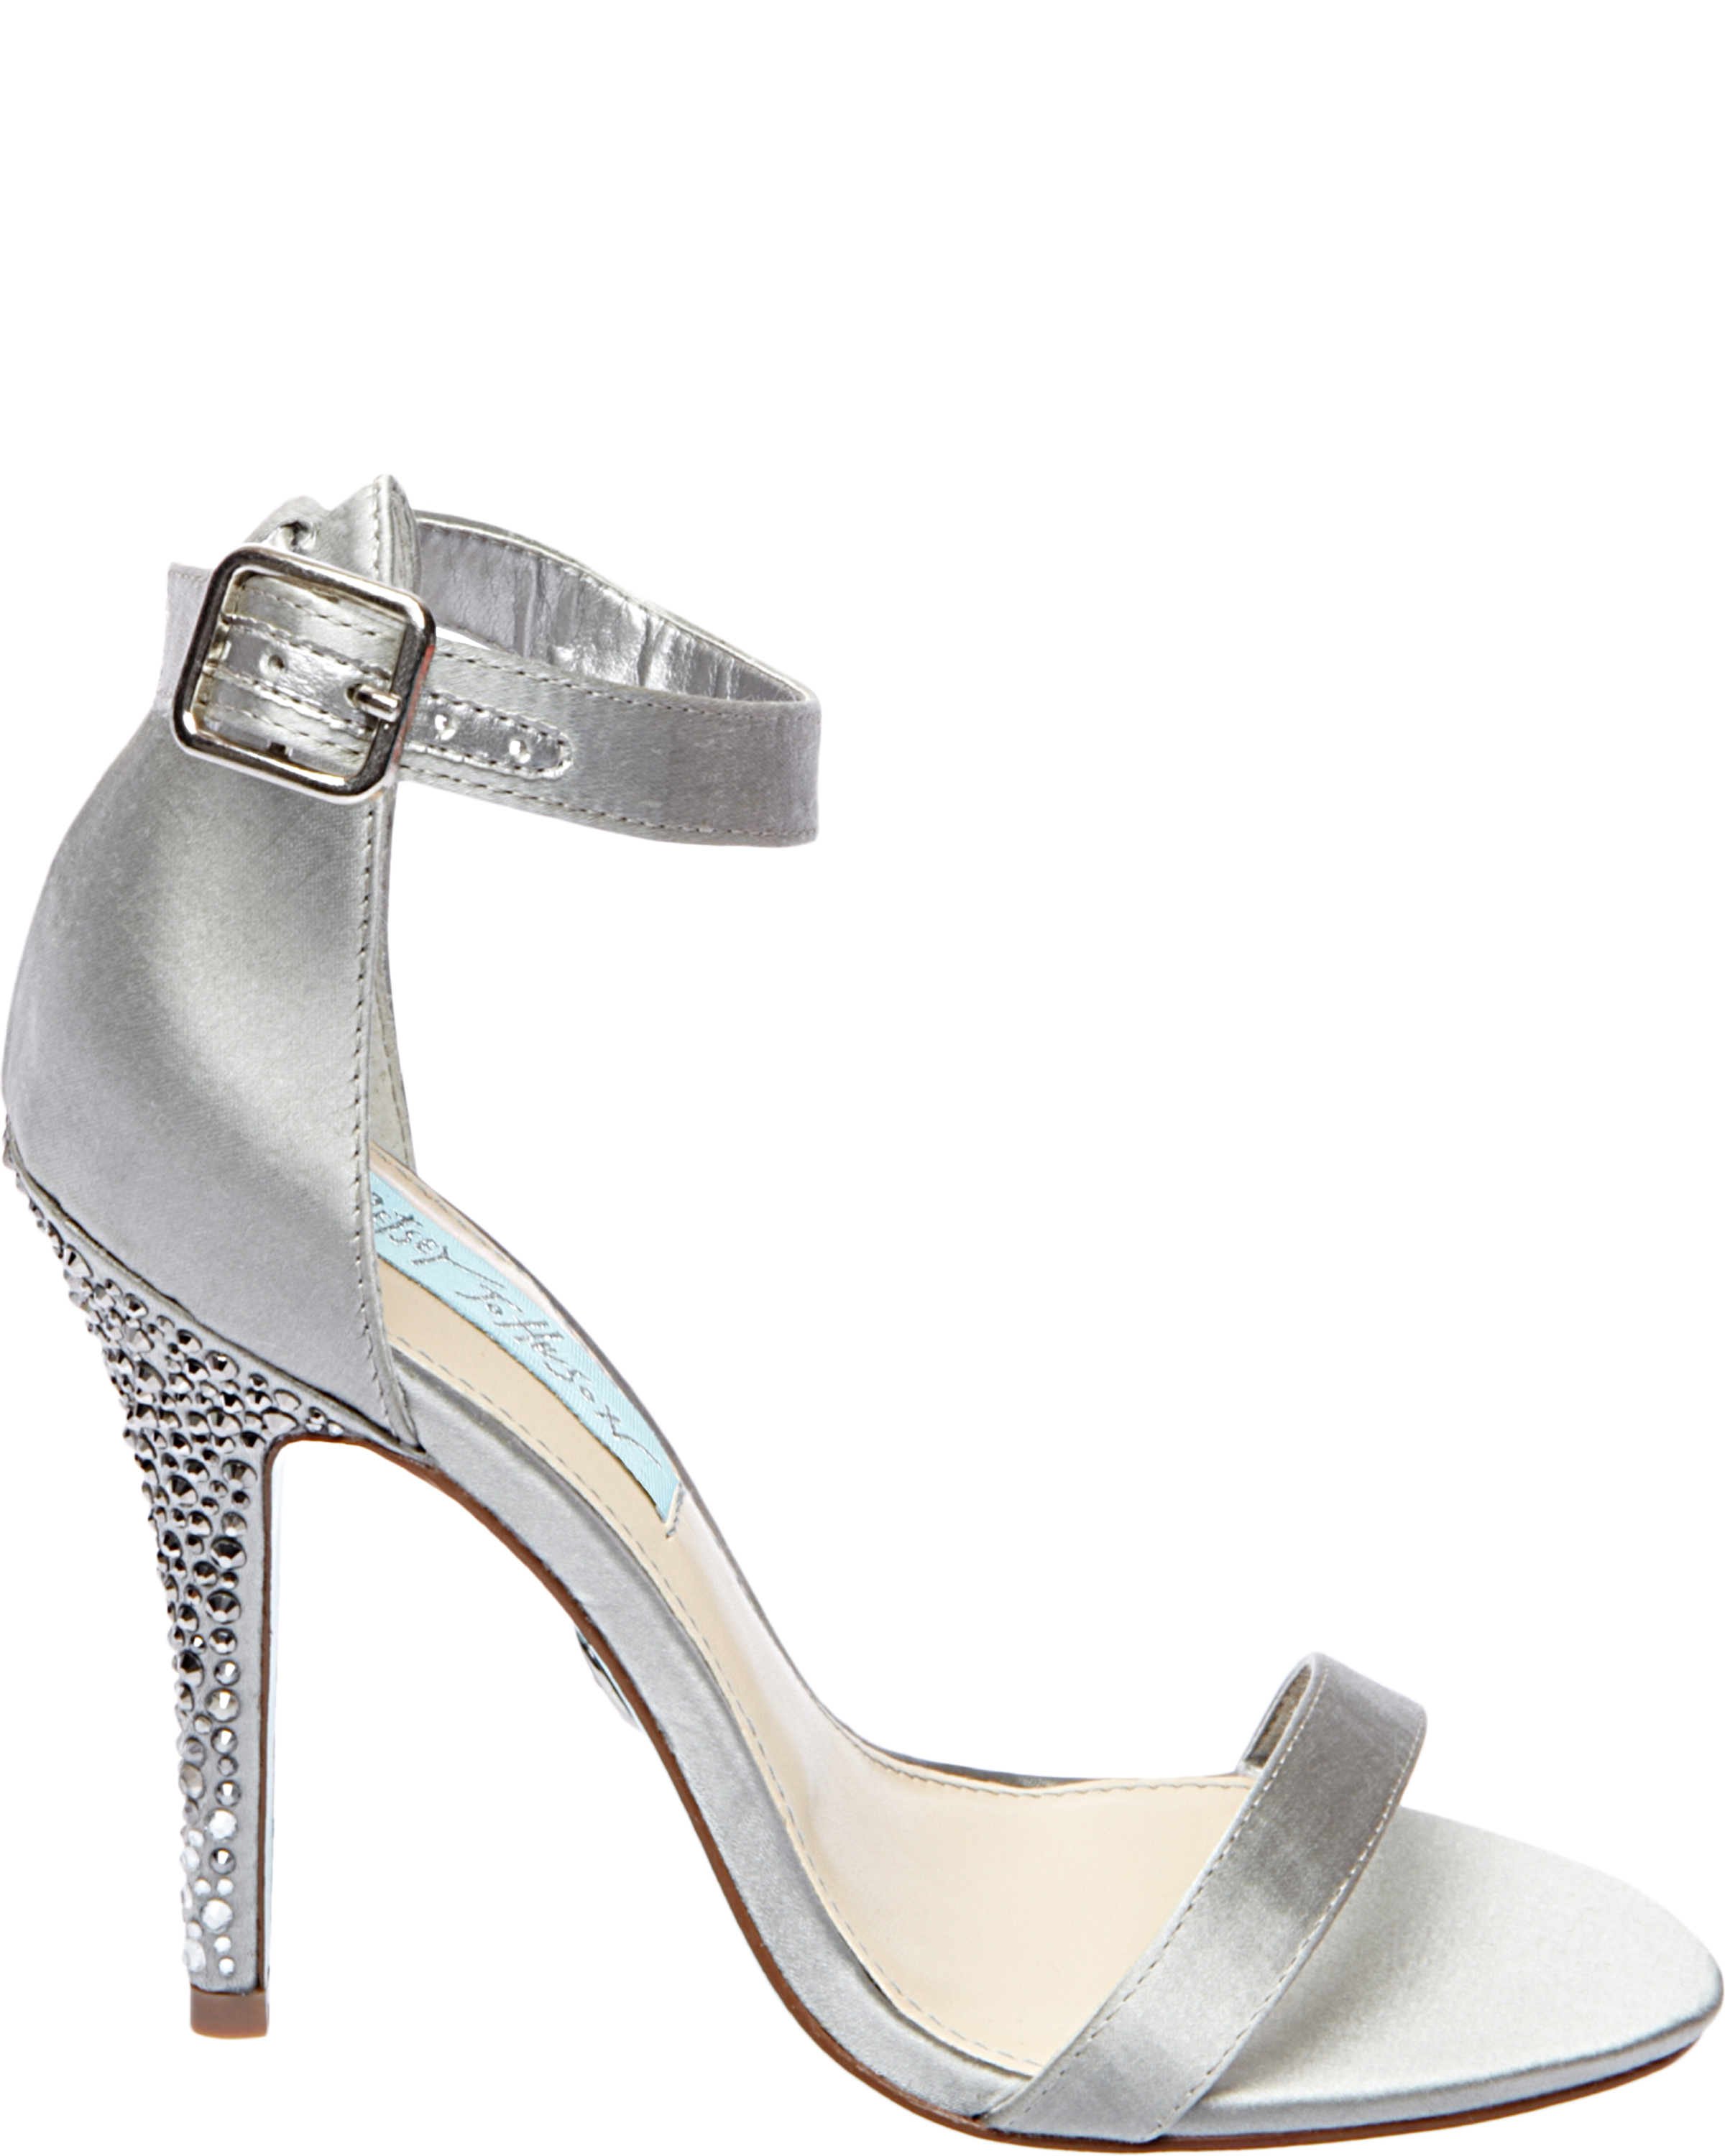 designer wedding shoes betsey johnson wedding shoes Fab Find Betsey Johnson debuts her new BLUE by Betsey Johnson bridal shoe line